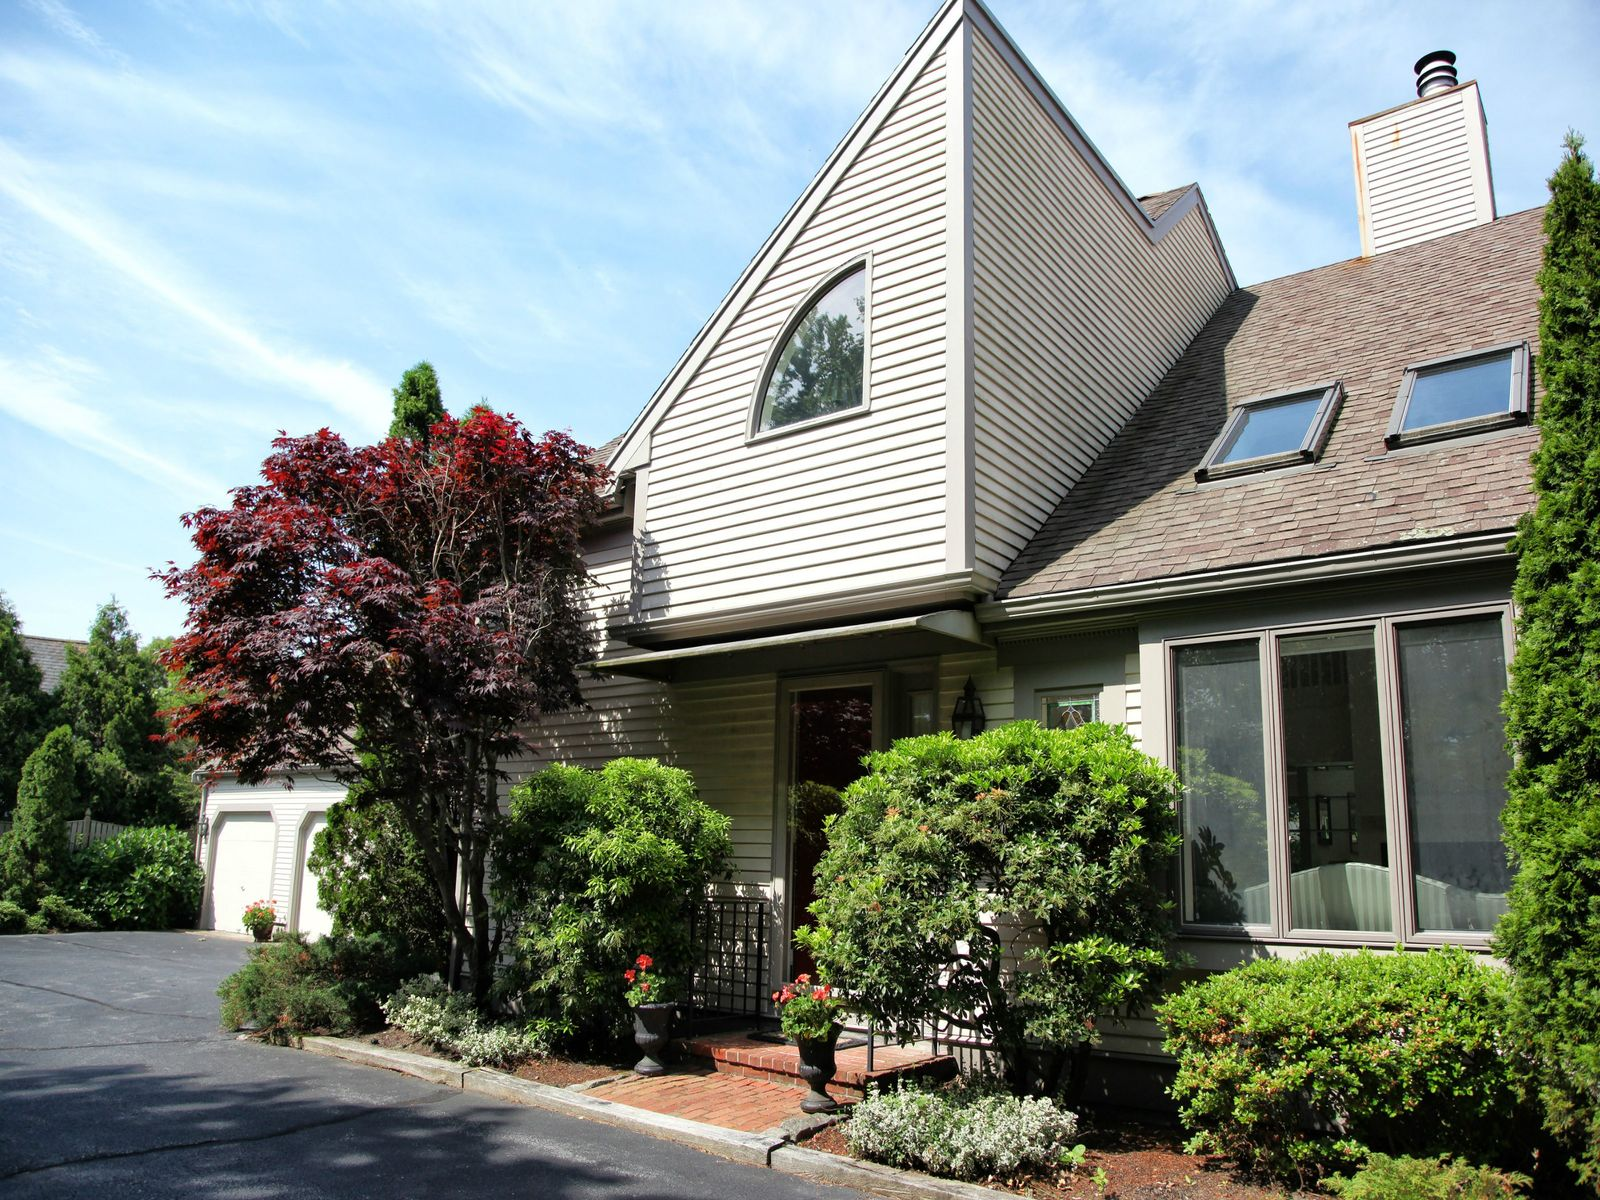 Spacious Townhome in Osterville Village, Osterville MA Condominium - Cape Cod Real Estate